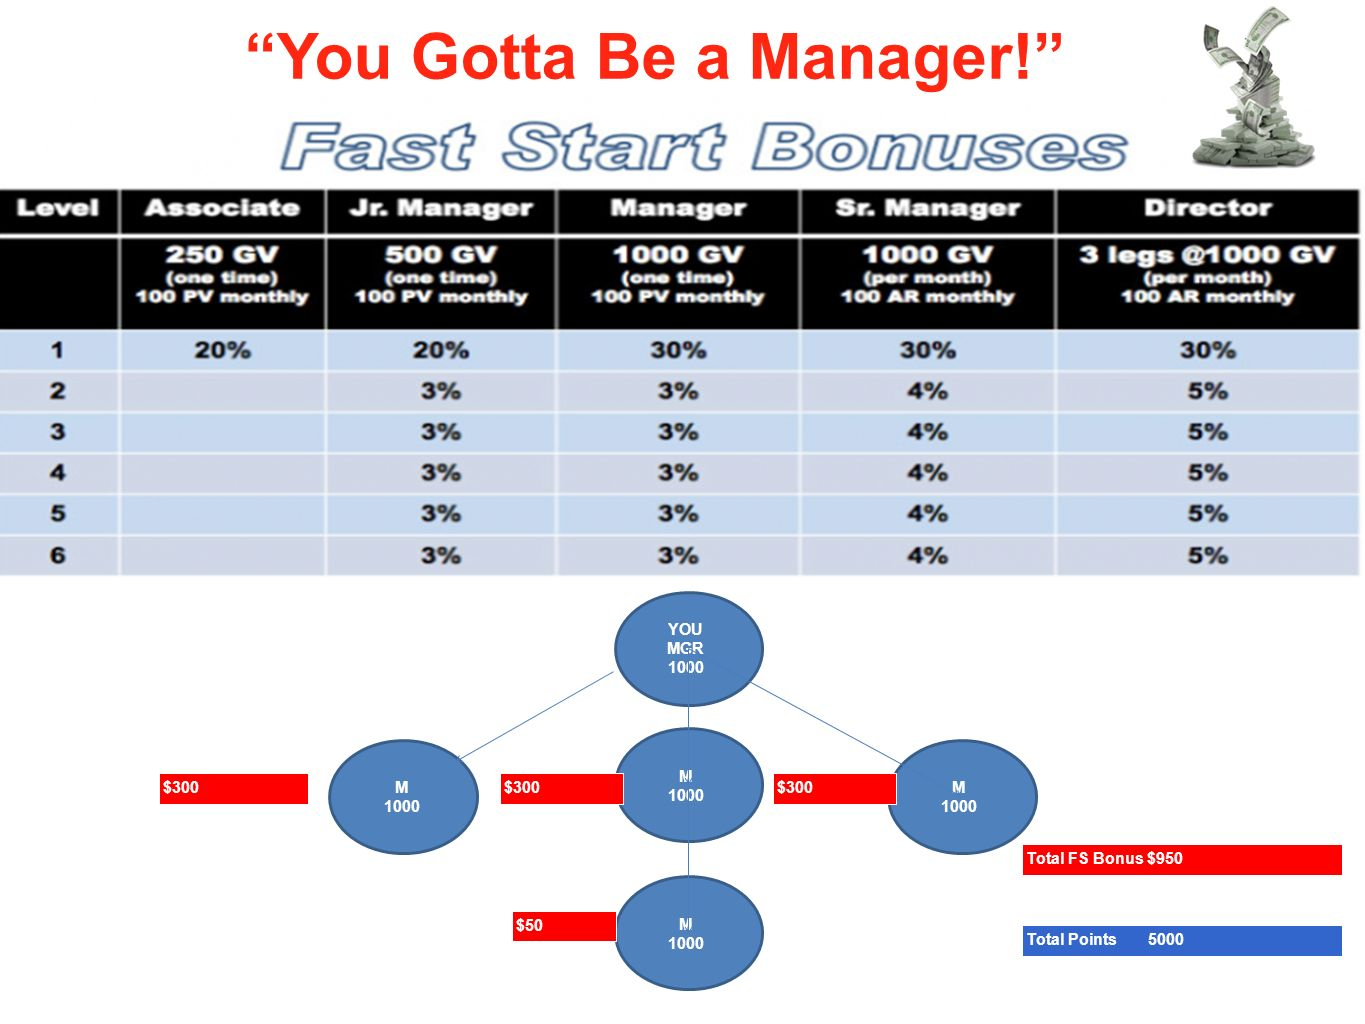 Phase You Gotta Be a Manager! 1 : Building Your Foundation